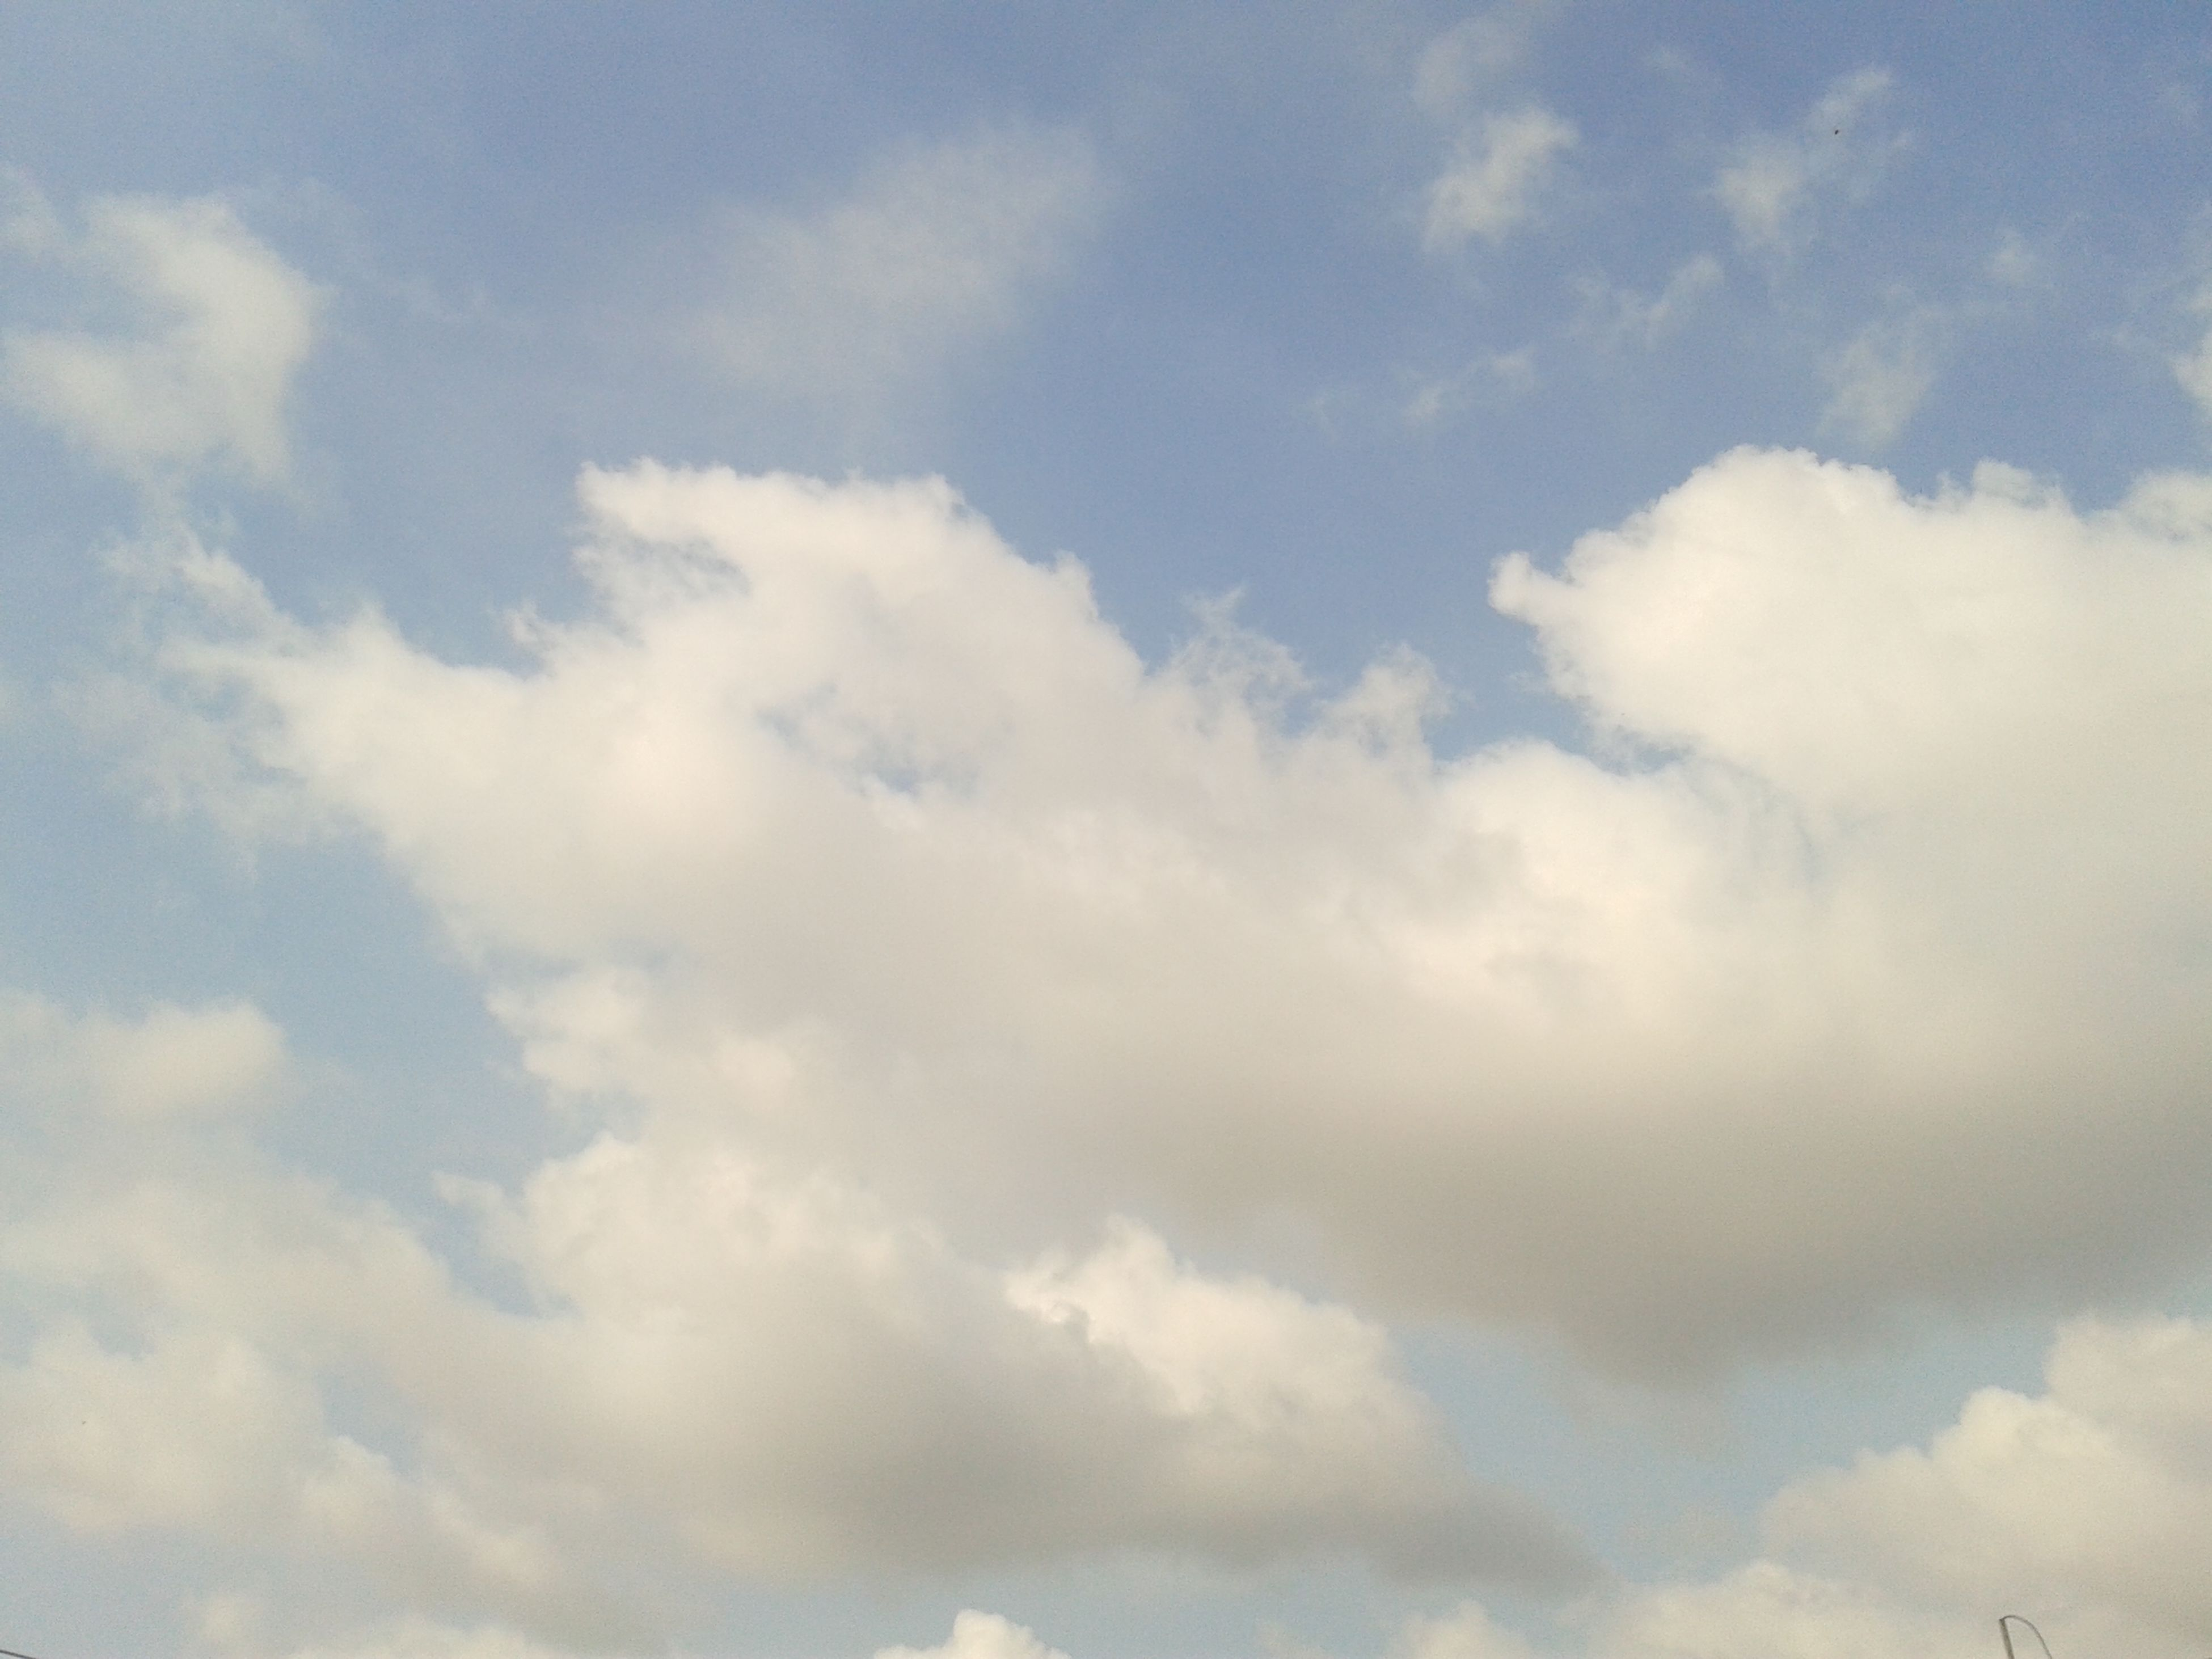 sky, cloud - sky, low angle view, sky only, beauty in nature, tranquility, cloudy, scenics, cloudscape, nature, tranquil scene, white color, backgrounds, cloud, full frame, idyllic, blue, weather, day, white